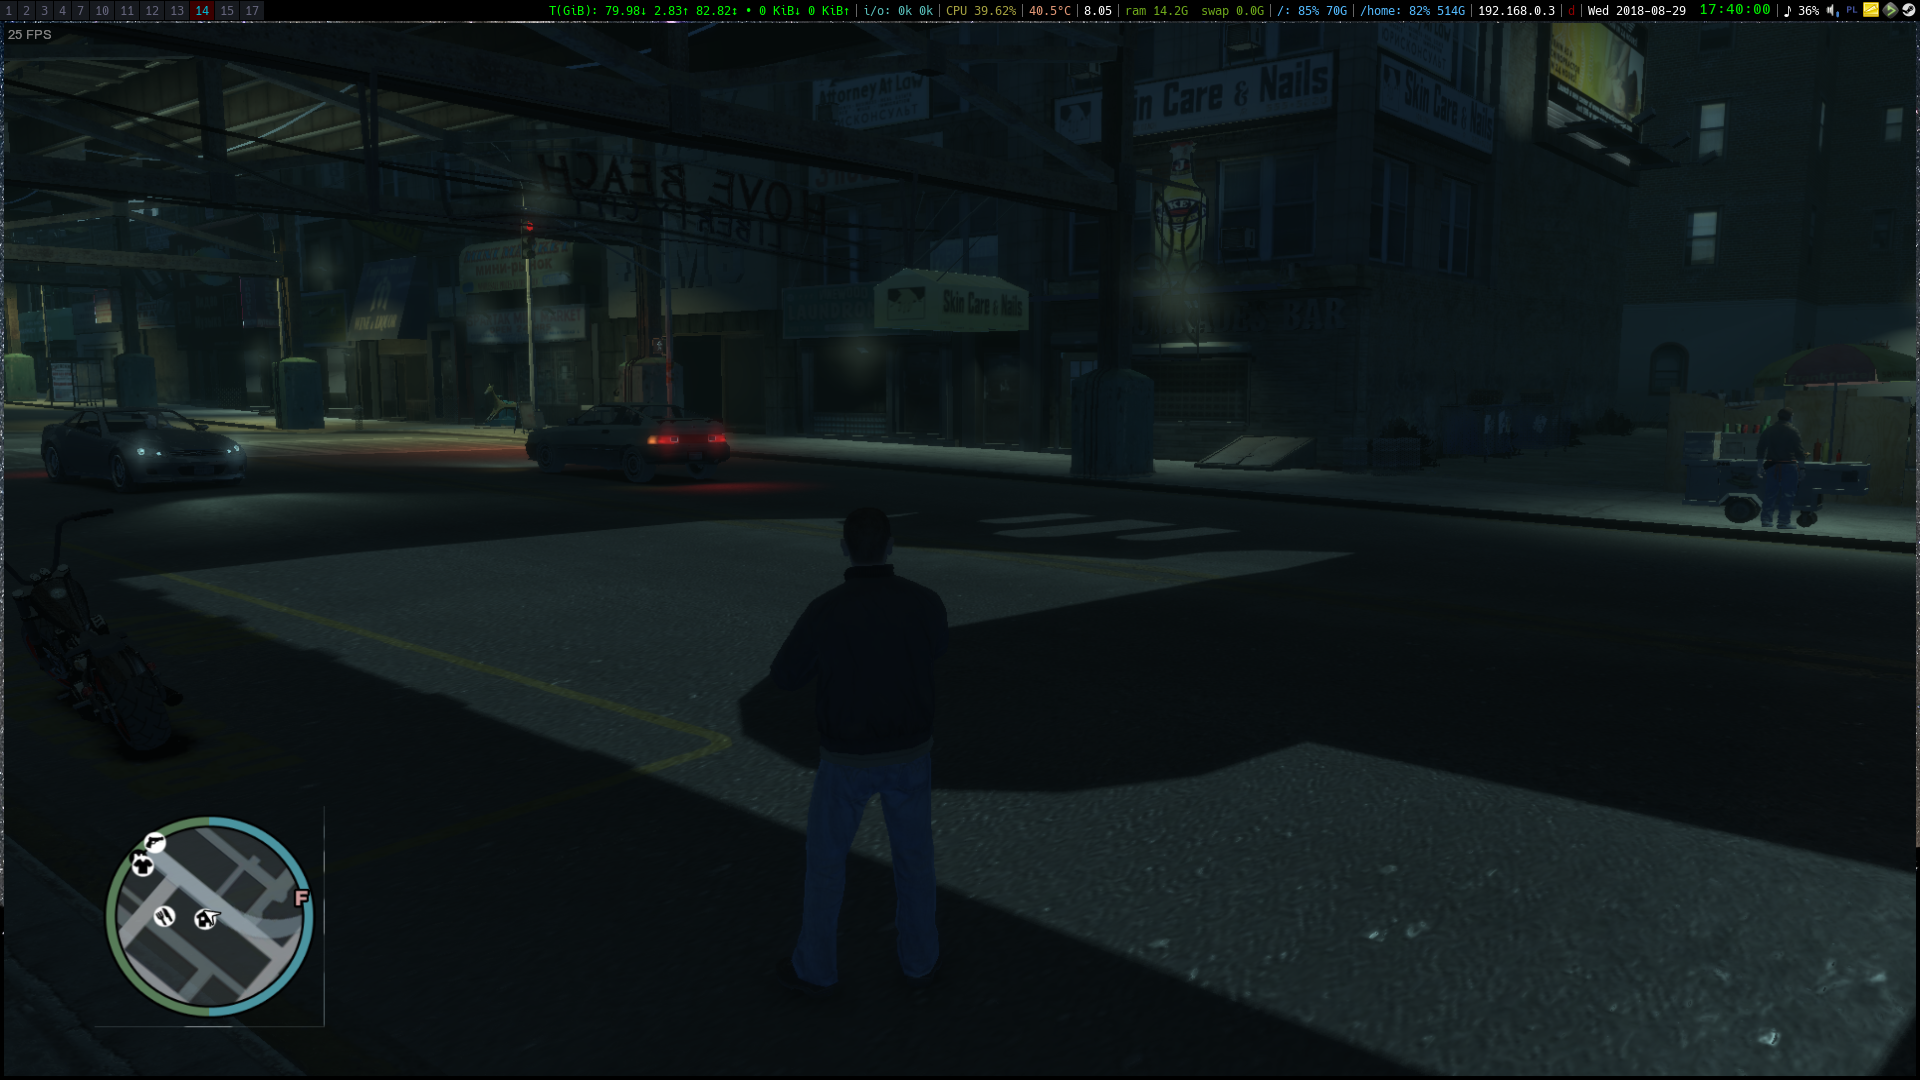 Grand Theft Auto IV crashes on start (12210) · Issue #350